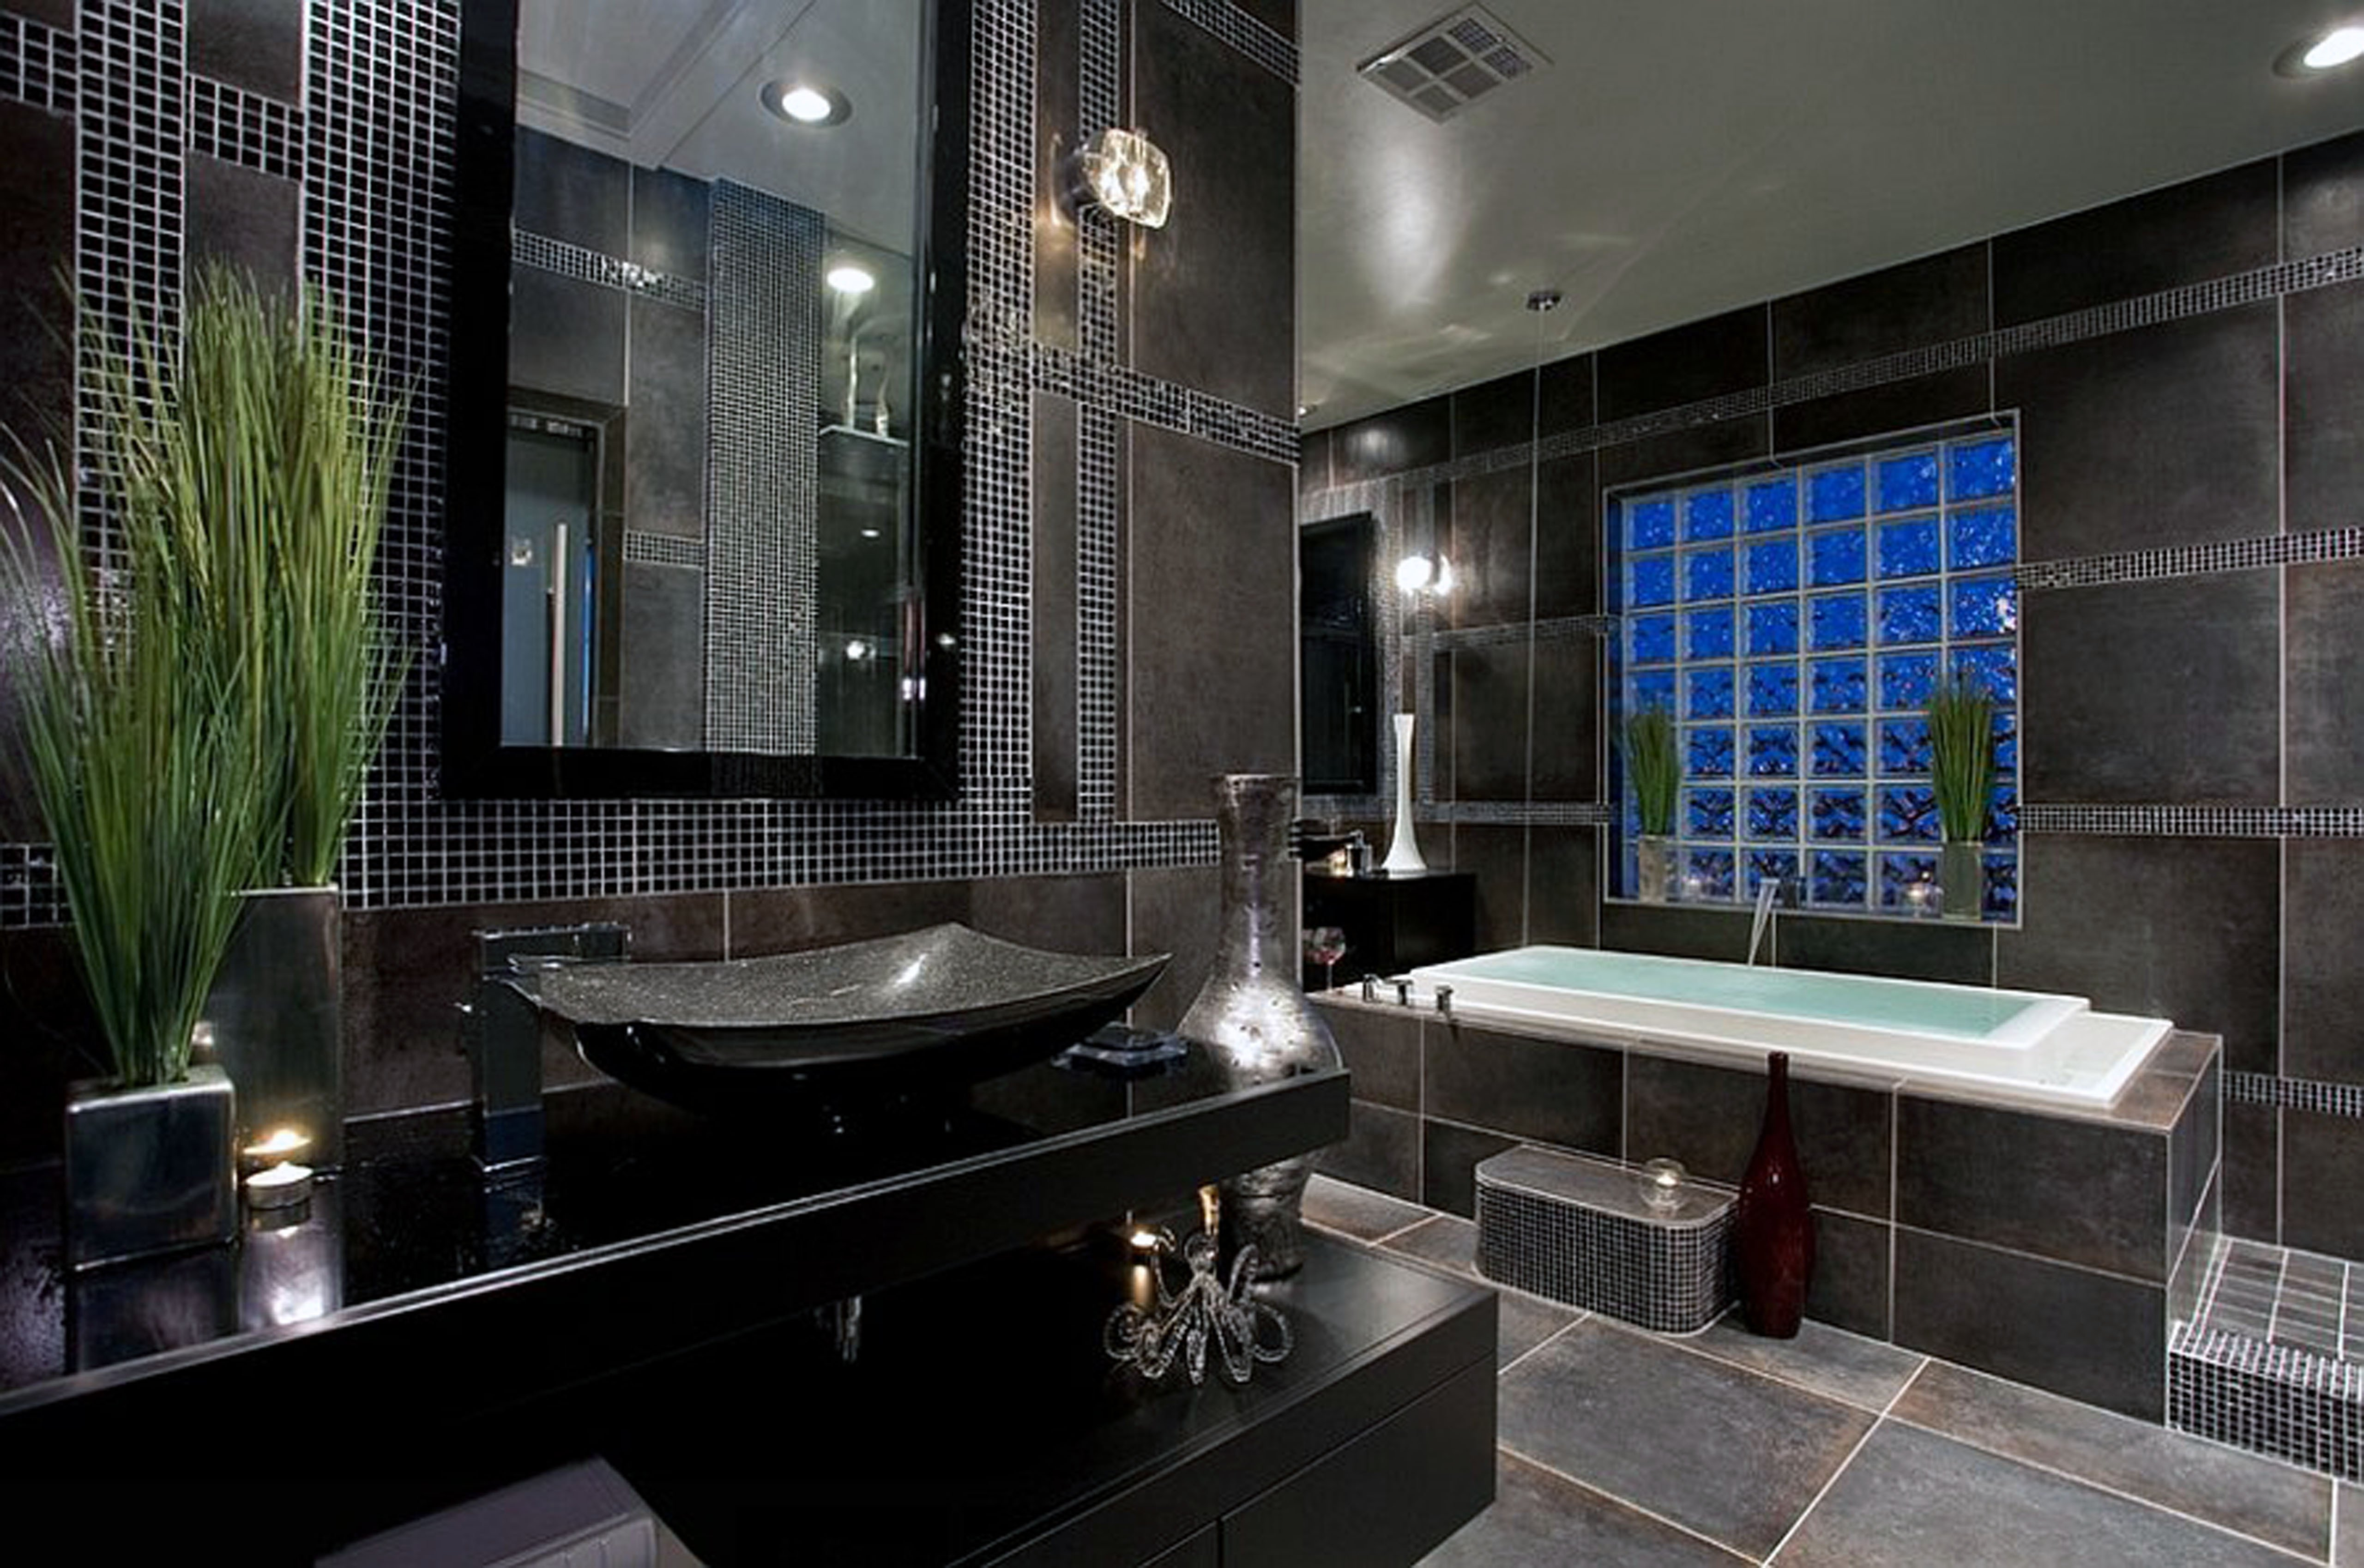 Black and Grey Bathroom Decor Luxury 30 Amazing Ideas and Pictures Of Antique Bathroom Tiles